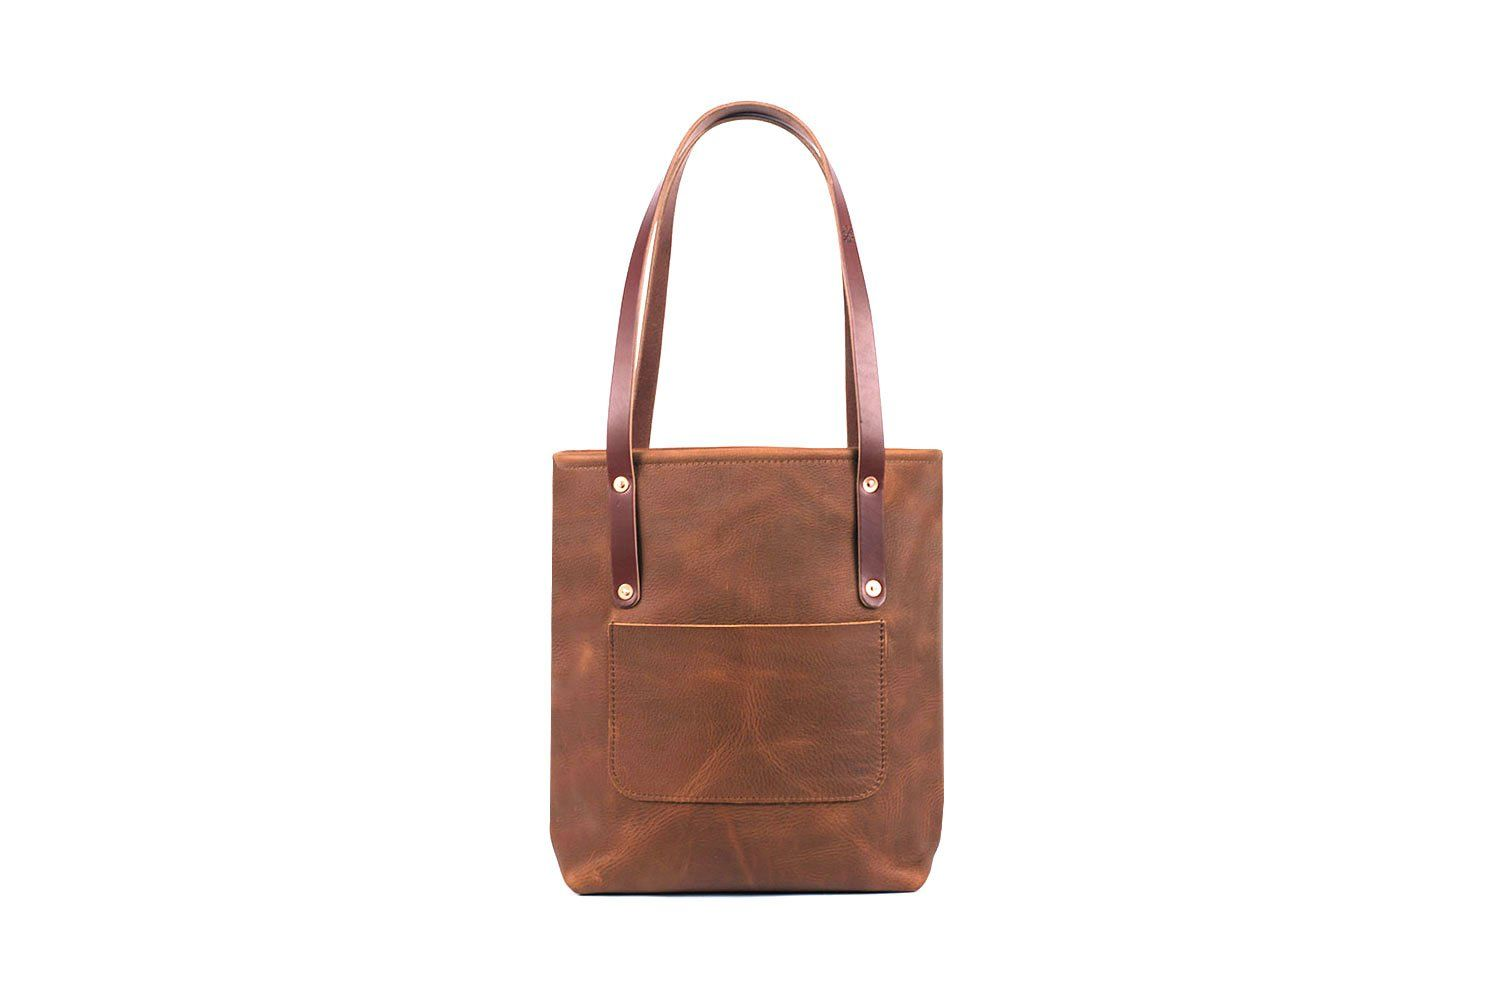 AVERY LEATHER TOTE BAG WITH ZIPPER - SLIM MEDIUM DELUXE